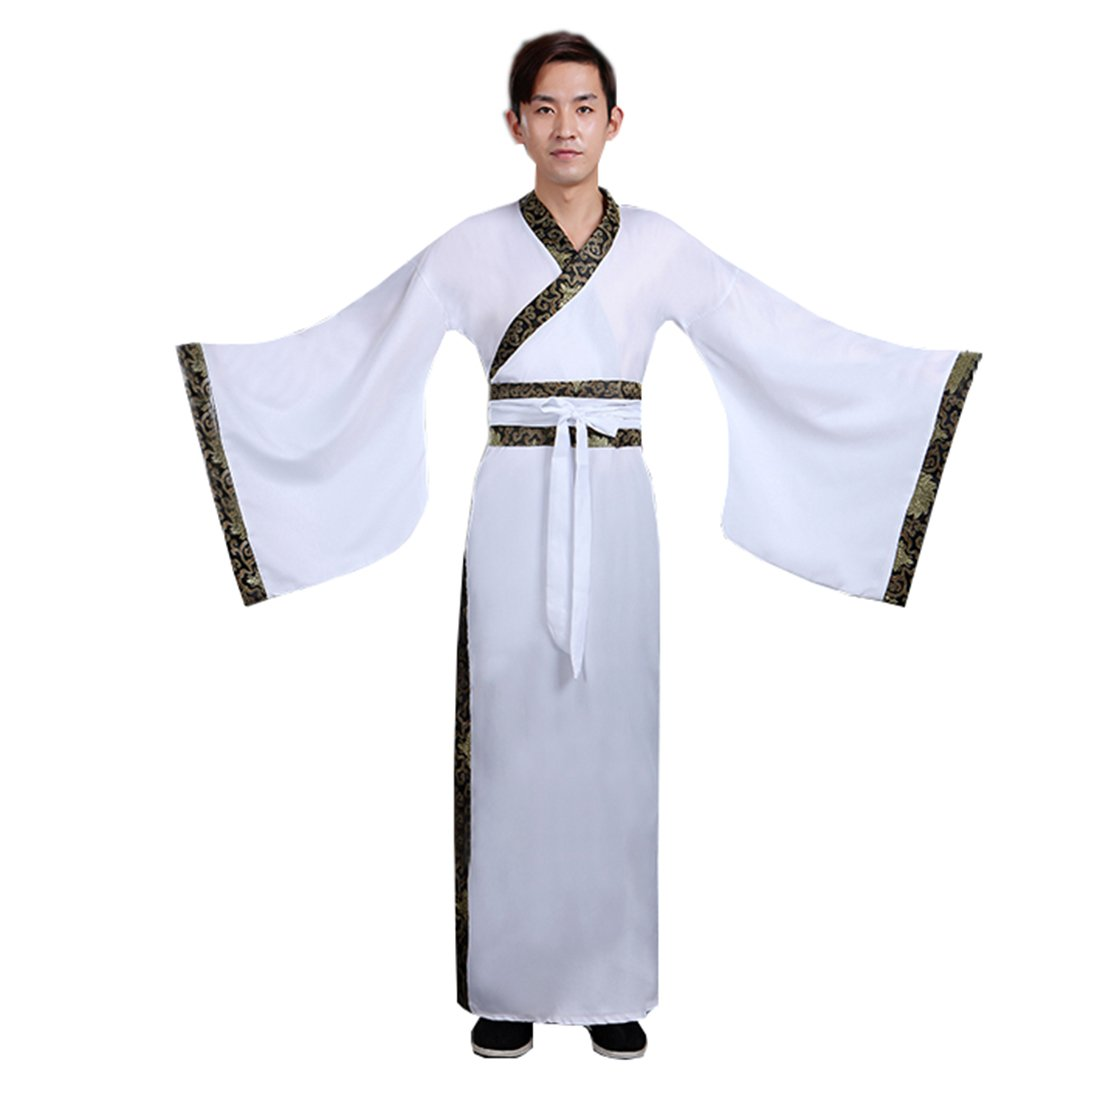 Ez-sofei Men's Ancient Chinese Han Dynasty Costumes Traditional Hanfu Robes